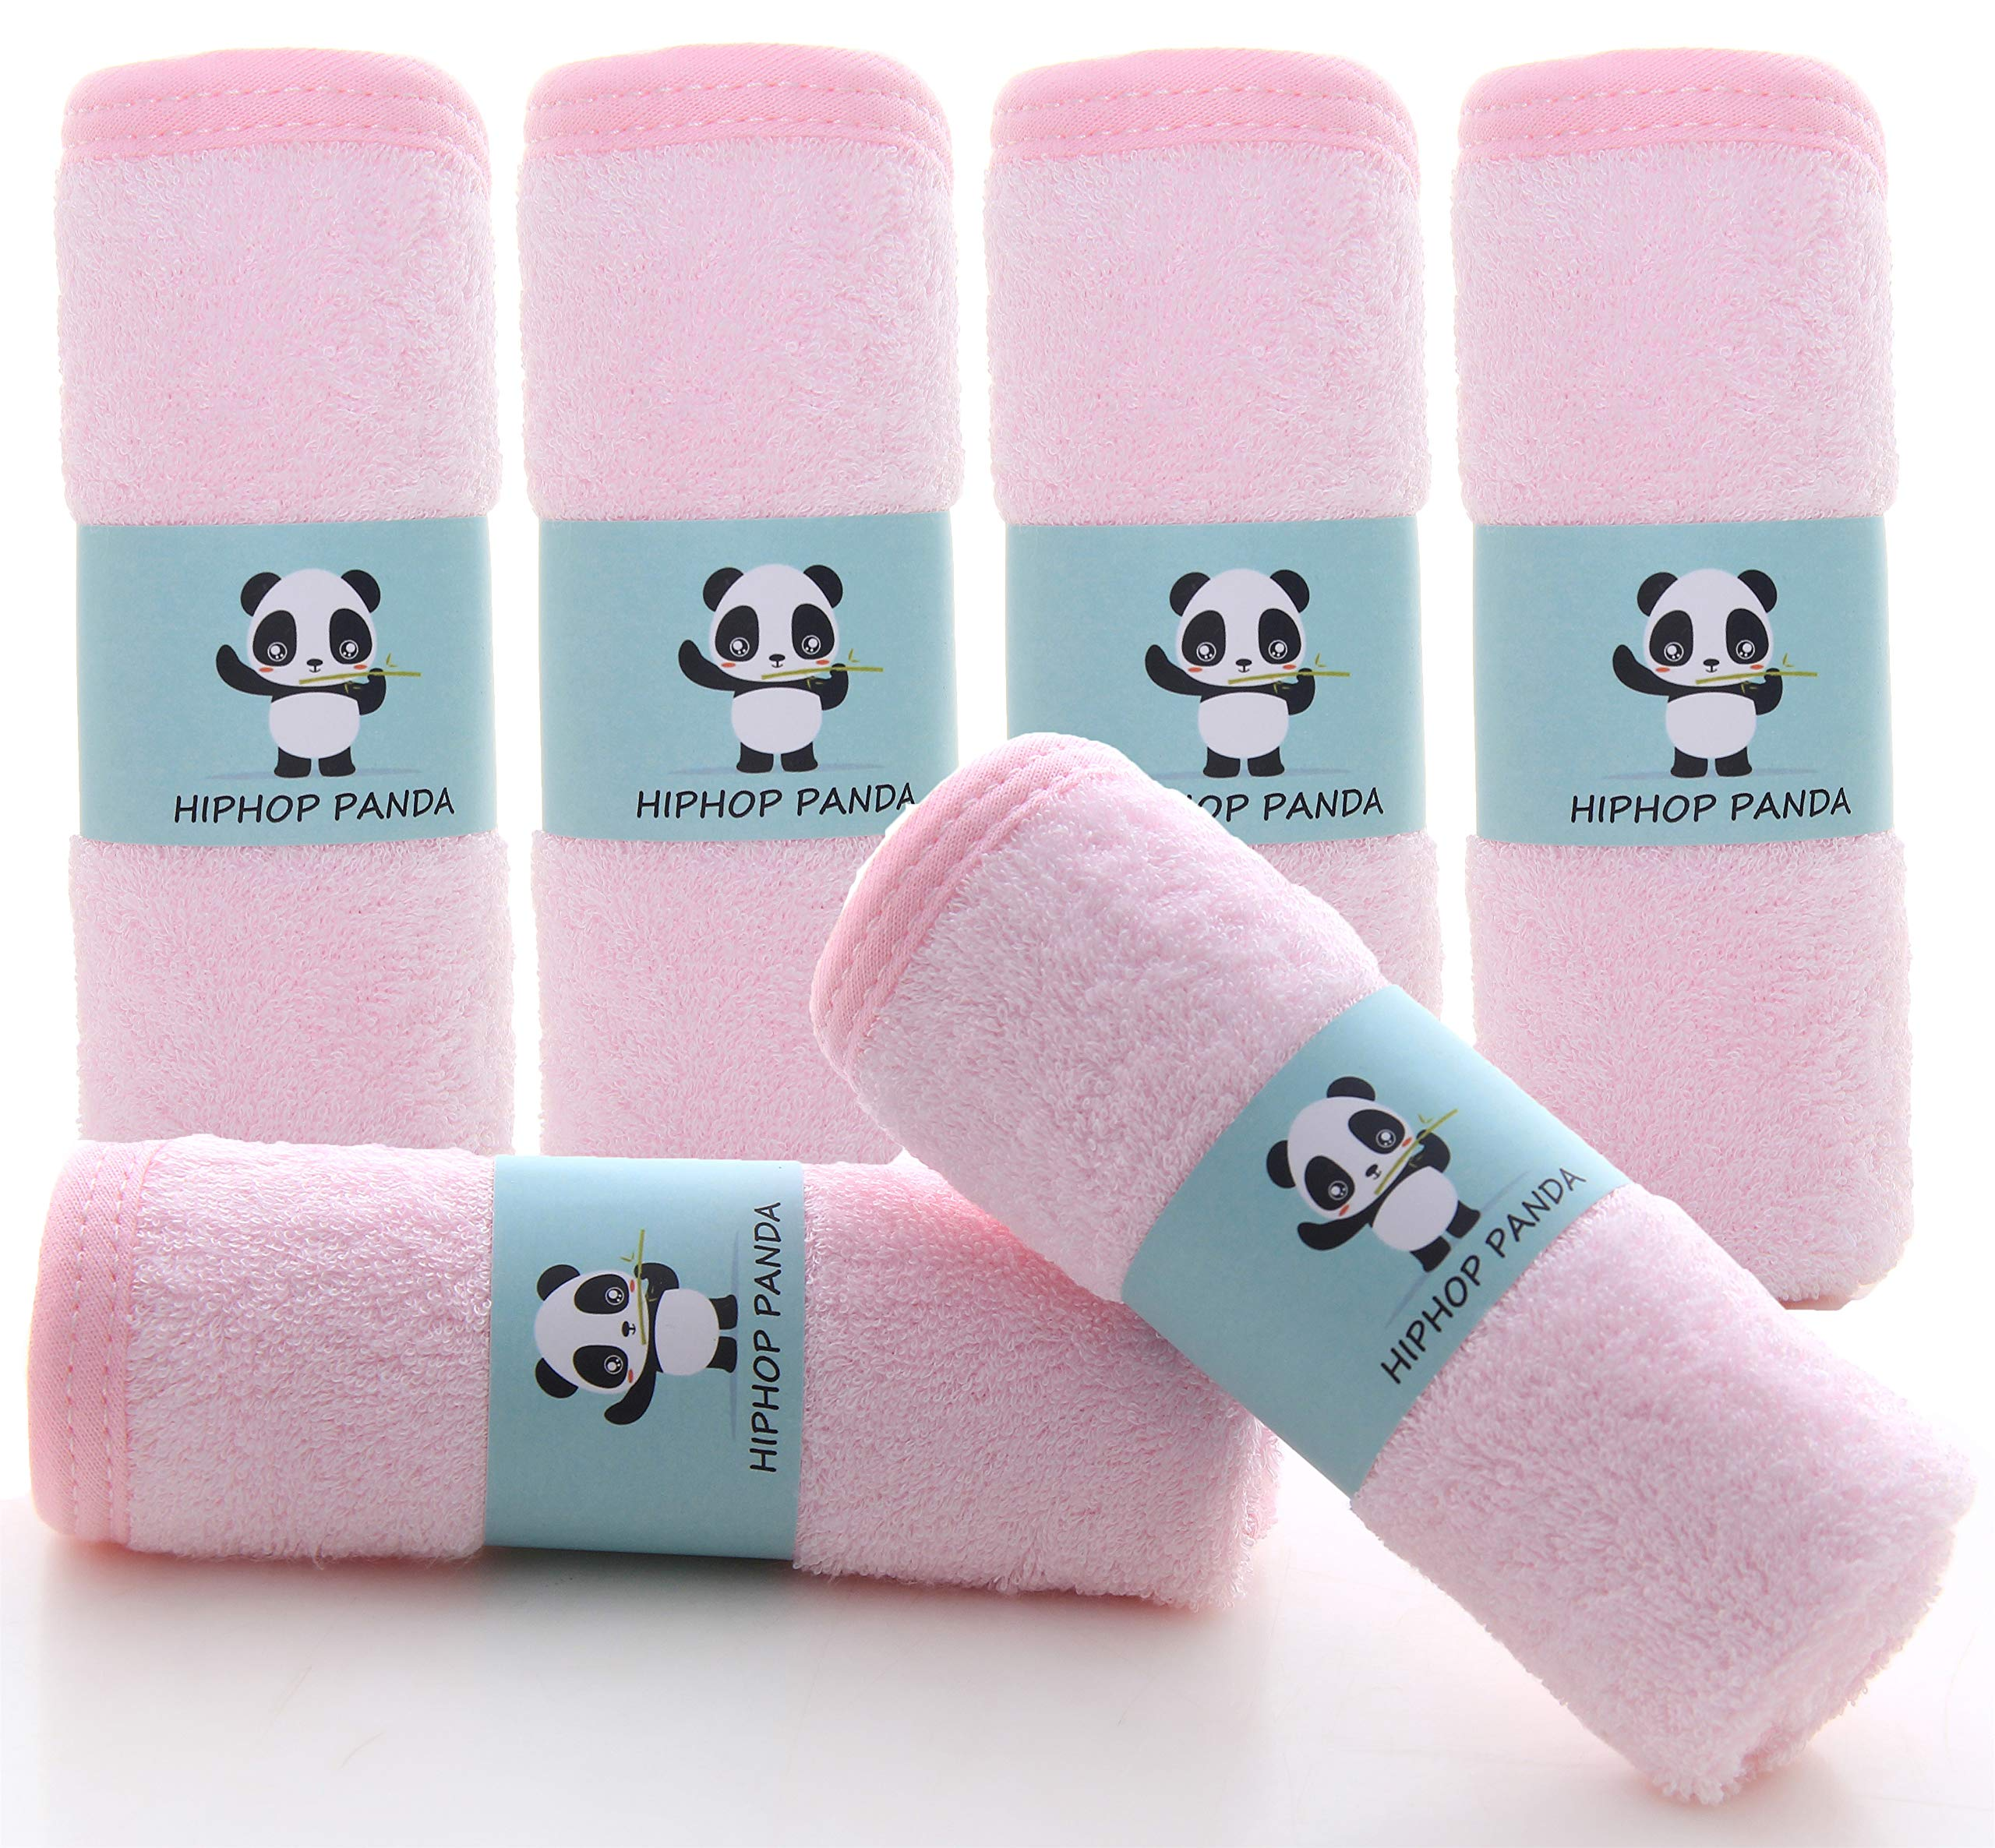 Bamboo Baby Washcloths - Hypoallergenic 2 Layer Ultra Soft Absorbent Bamboo Towel - Newborn Bath Face Towel - Natural Reusable Baby Wipes for Sensitive Skin -Baby Registry as Shower (Pink)